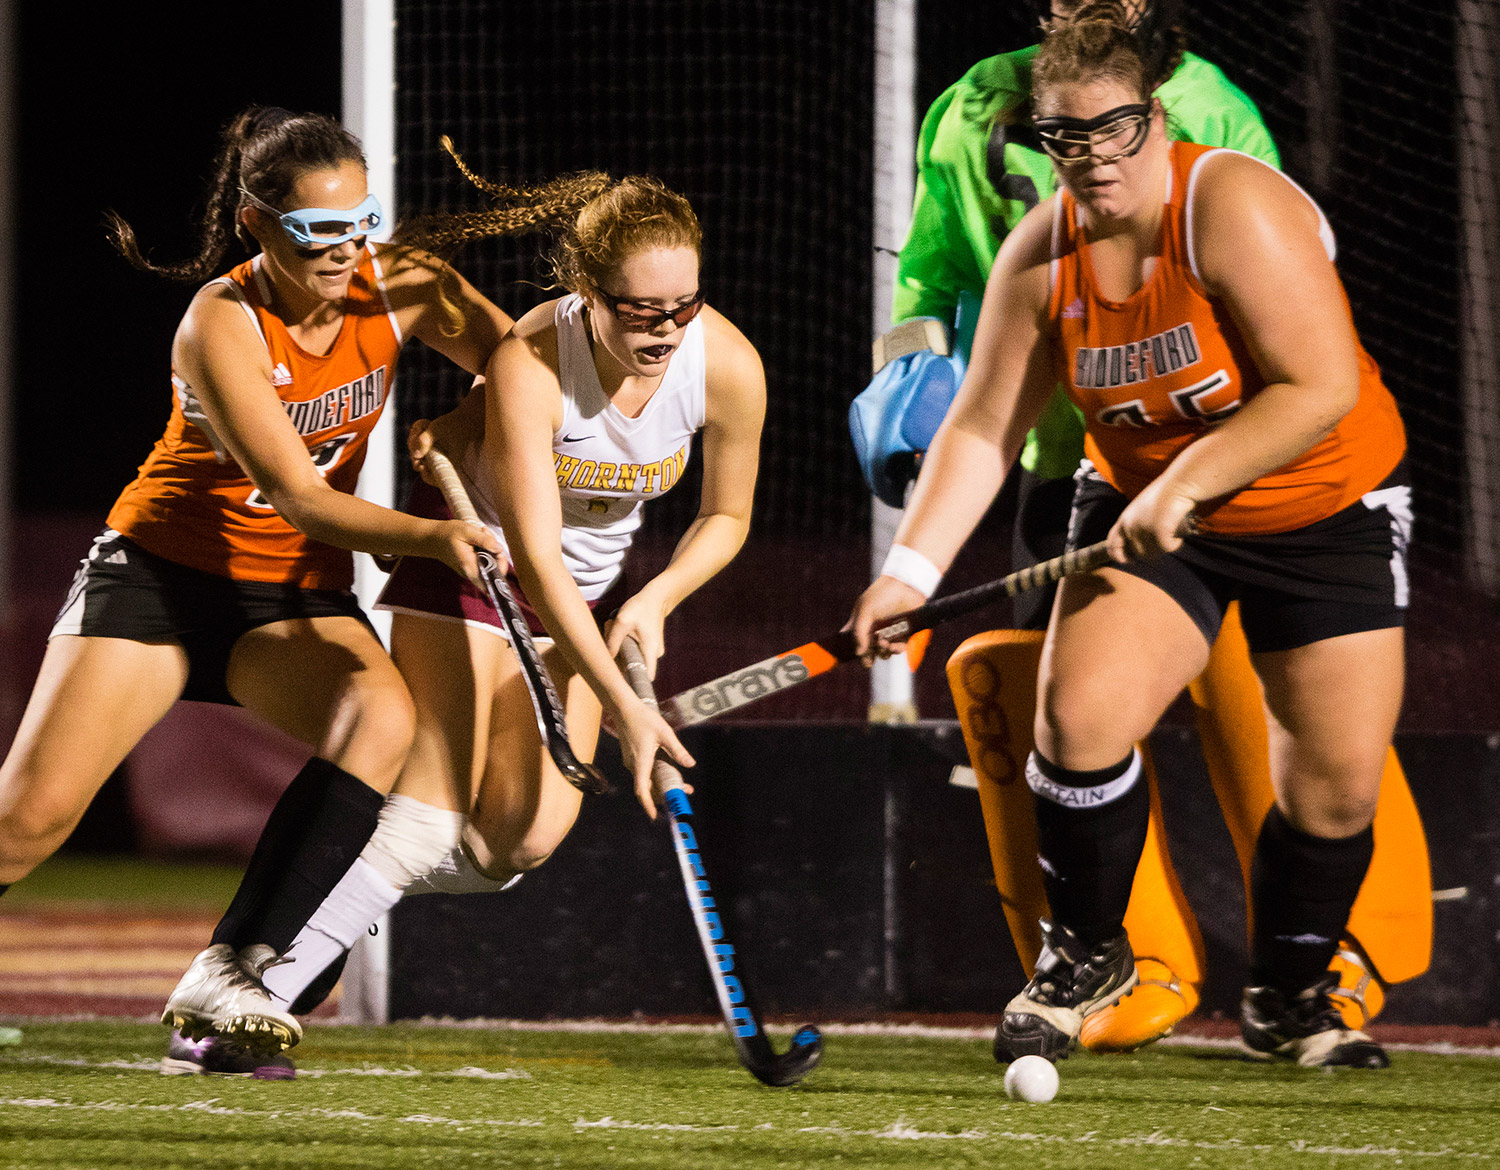 Thornton Academy forward Taylor Ouellette controls the ball in front of the Biddeford goal as Biddeford's Peyton McKeown, left, and Paige Boudreau defend. Carl D. Walsh/Staff Photographer